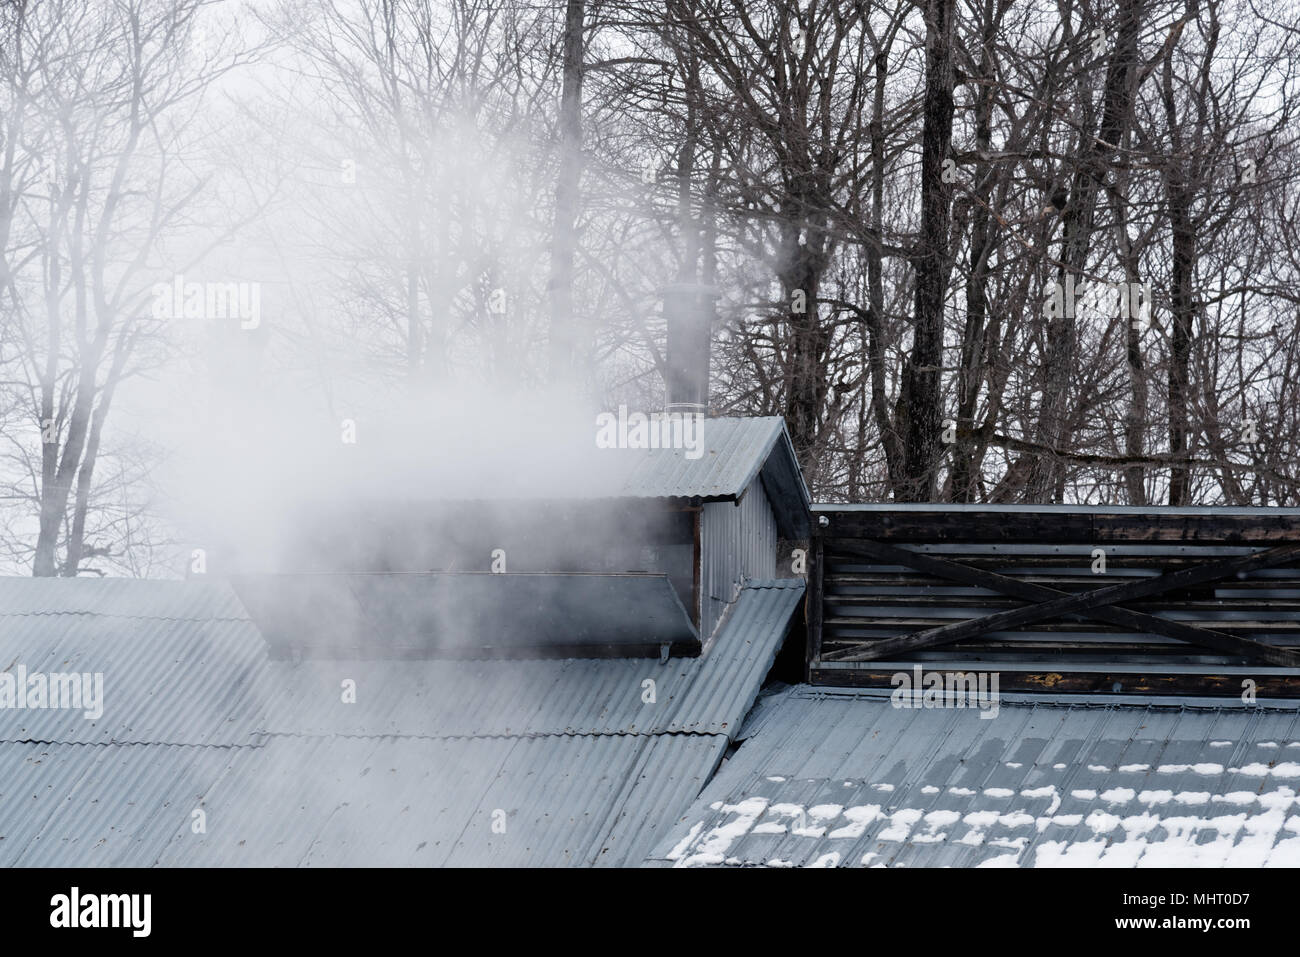 Steam from maple syrup production rising from a vent in the roof of a sugar shack in Quebec, Canada - Stock Image